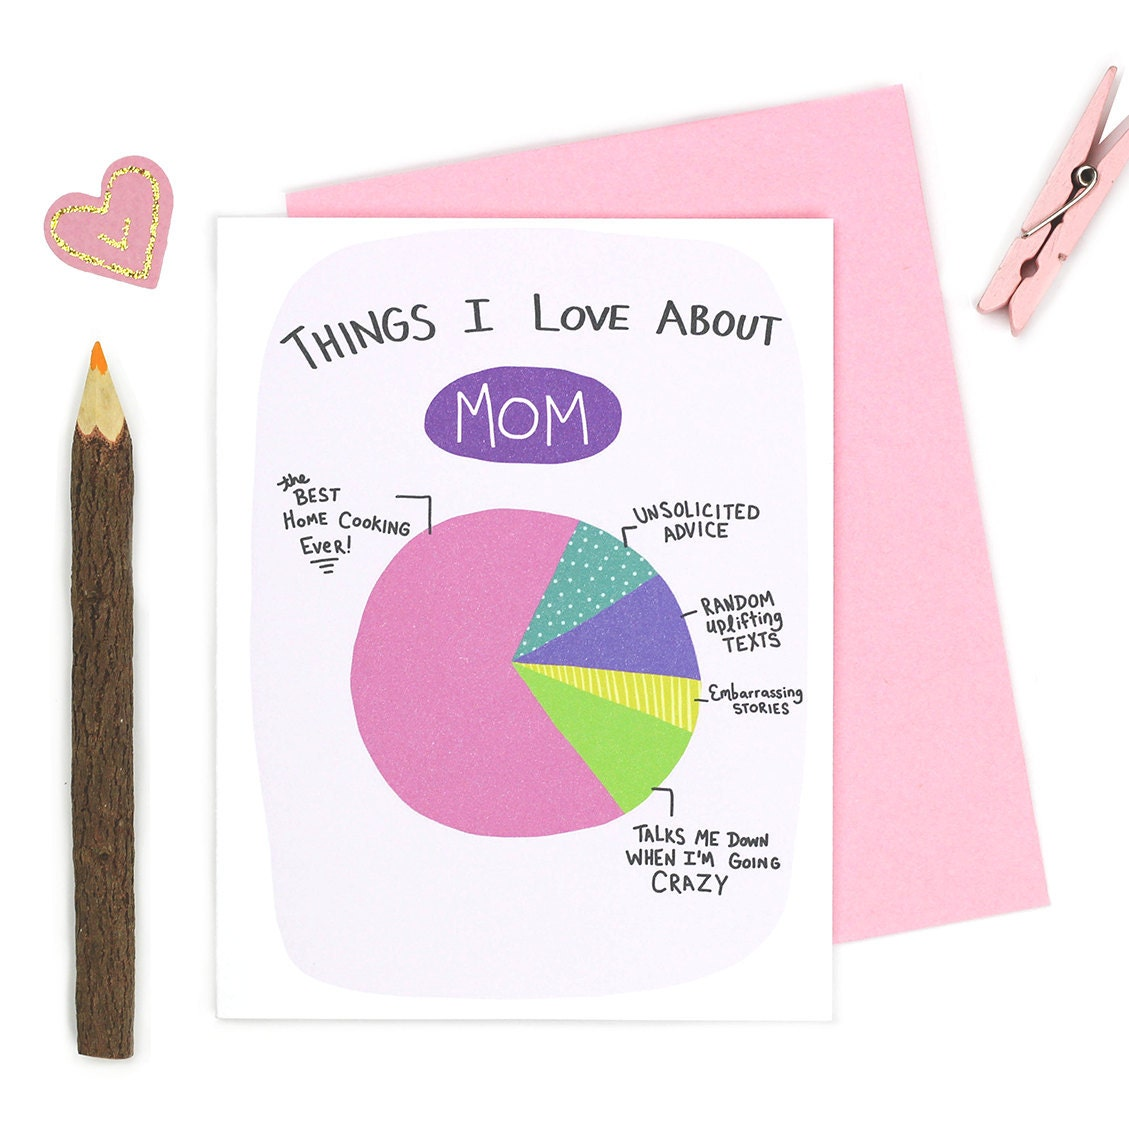 Things i love about mom pie chart funny mom birthday card zoom geenschuldenfo Choice Image